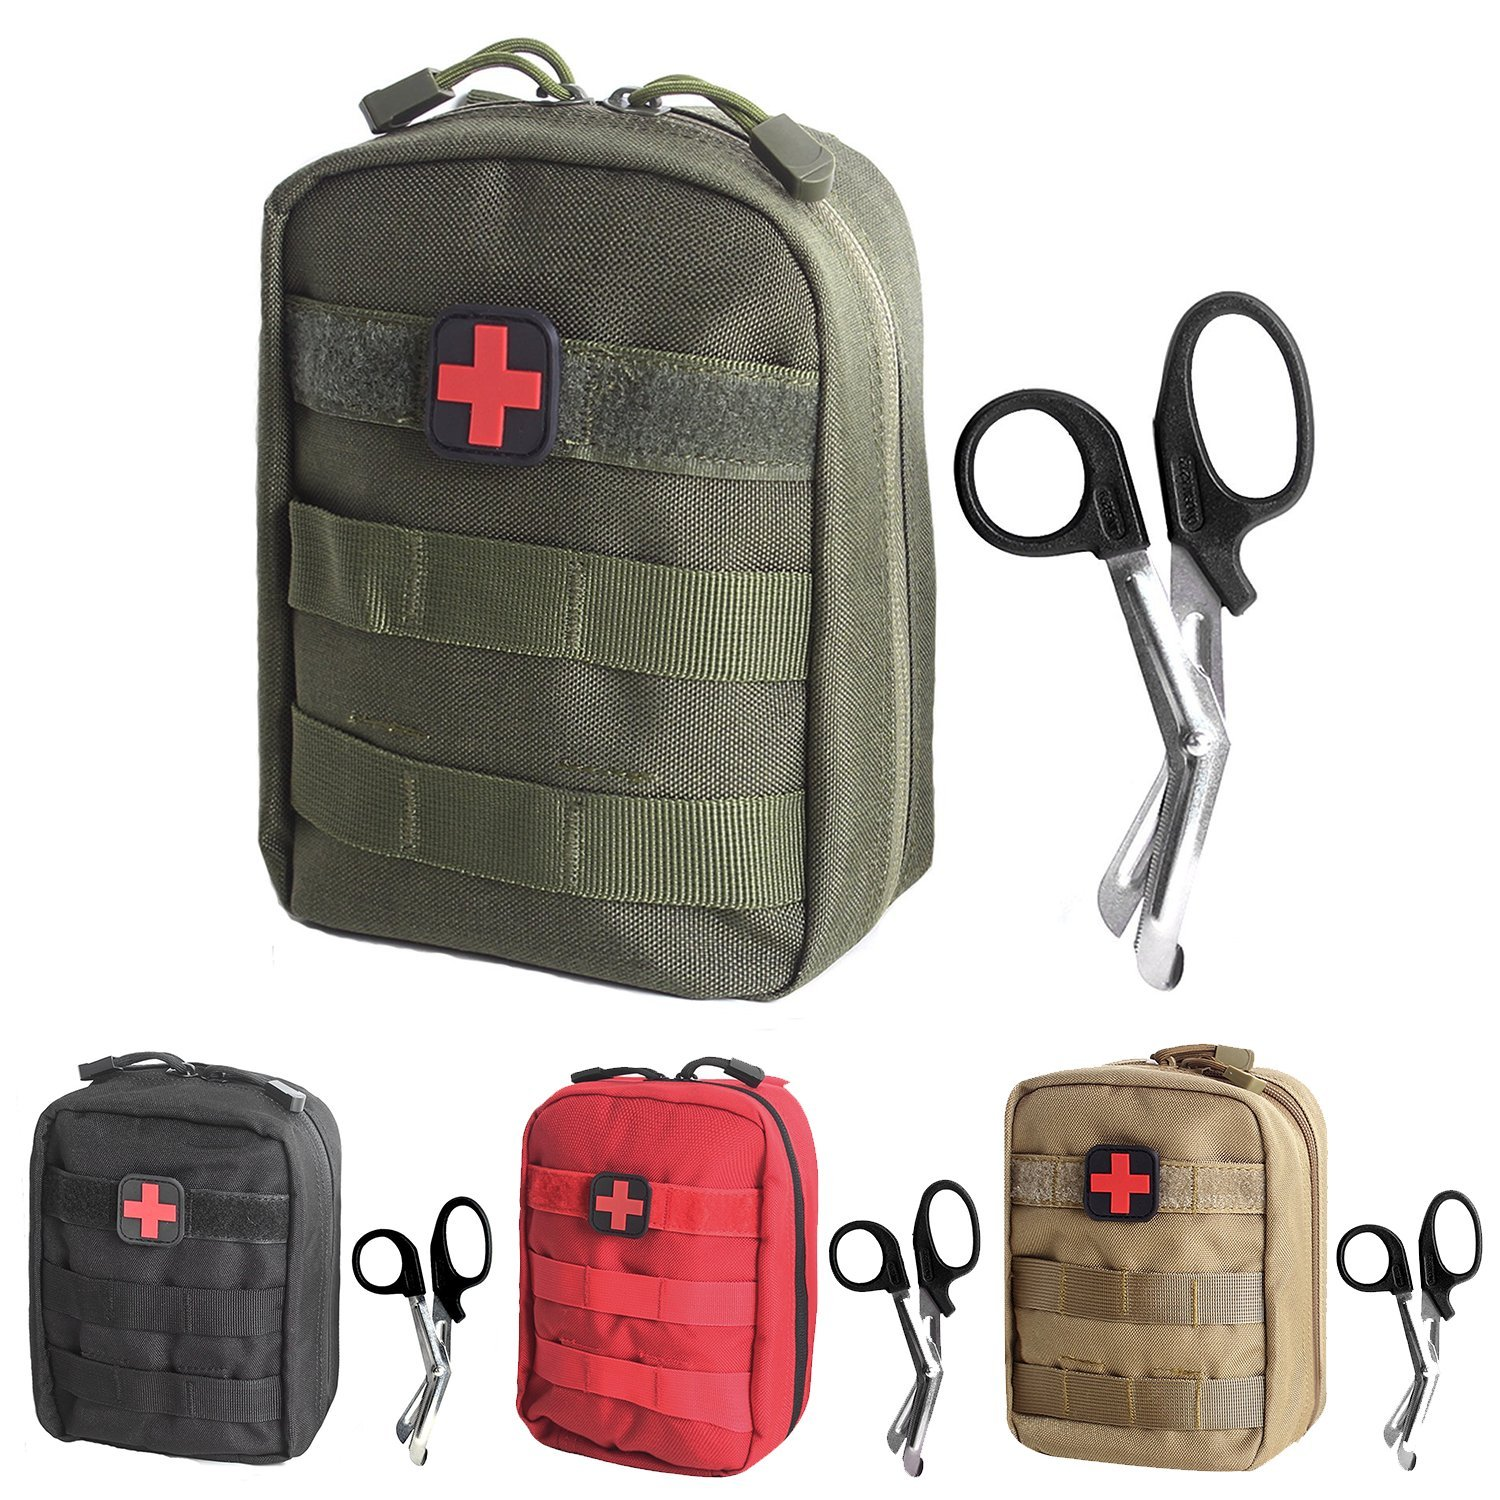 Tactical MOLLE EMT Pouch Medical Utility Bag 1000D Nylon with First Aid Patch and Shear (Green2 with First Aid Patch)